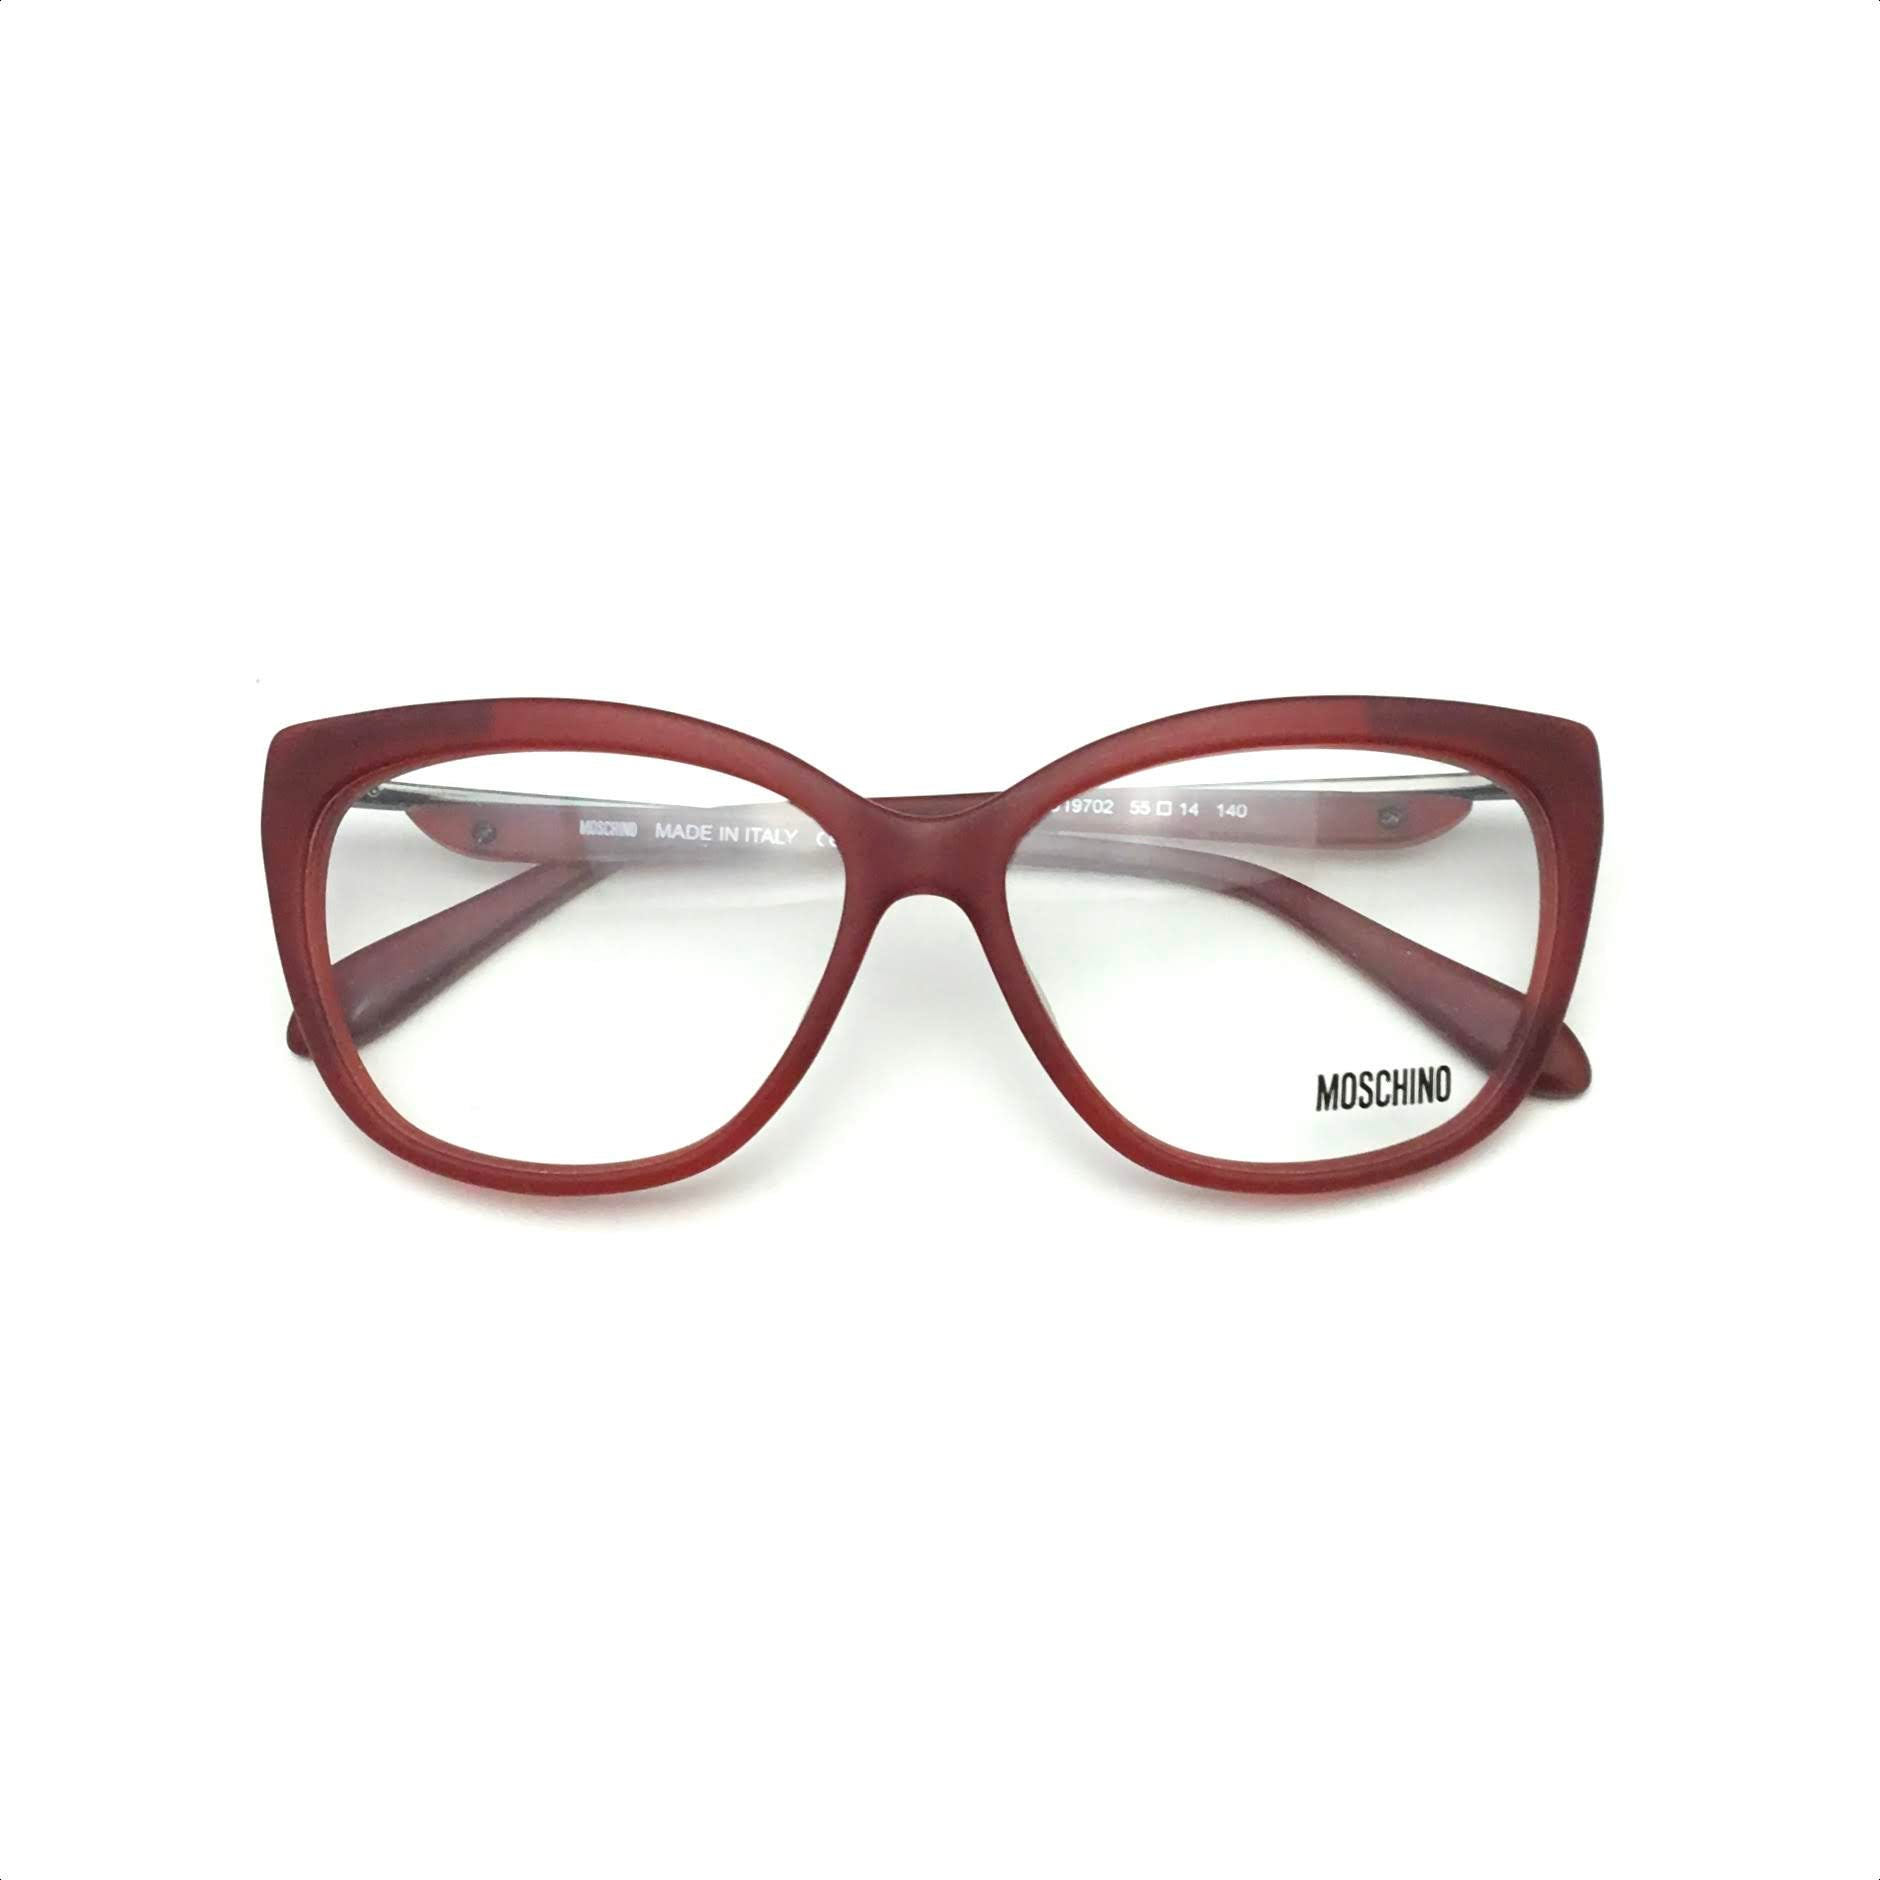 Moschino Glasses $109 ITALY D9